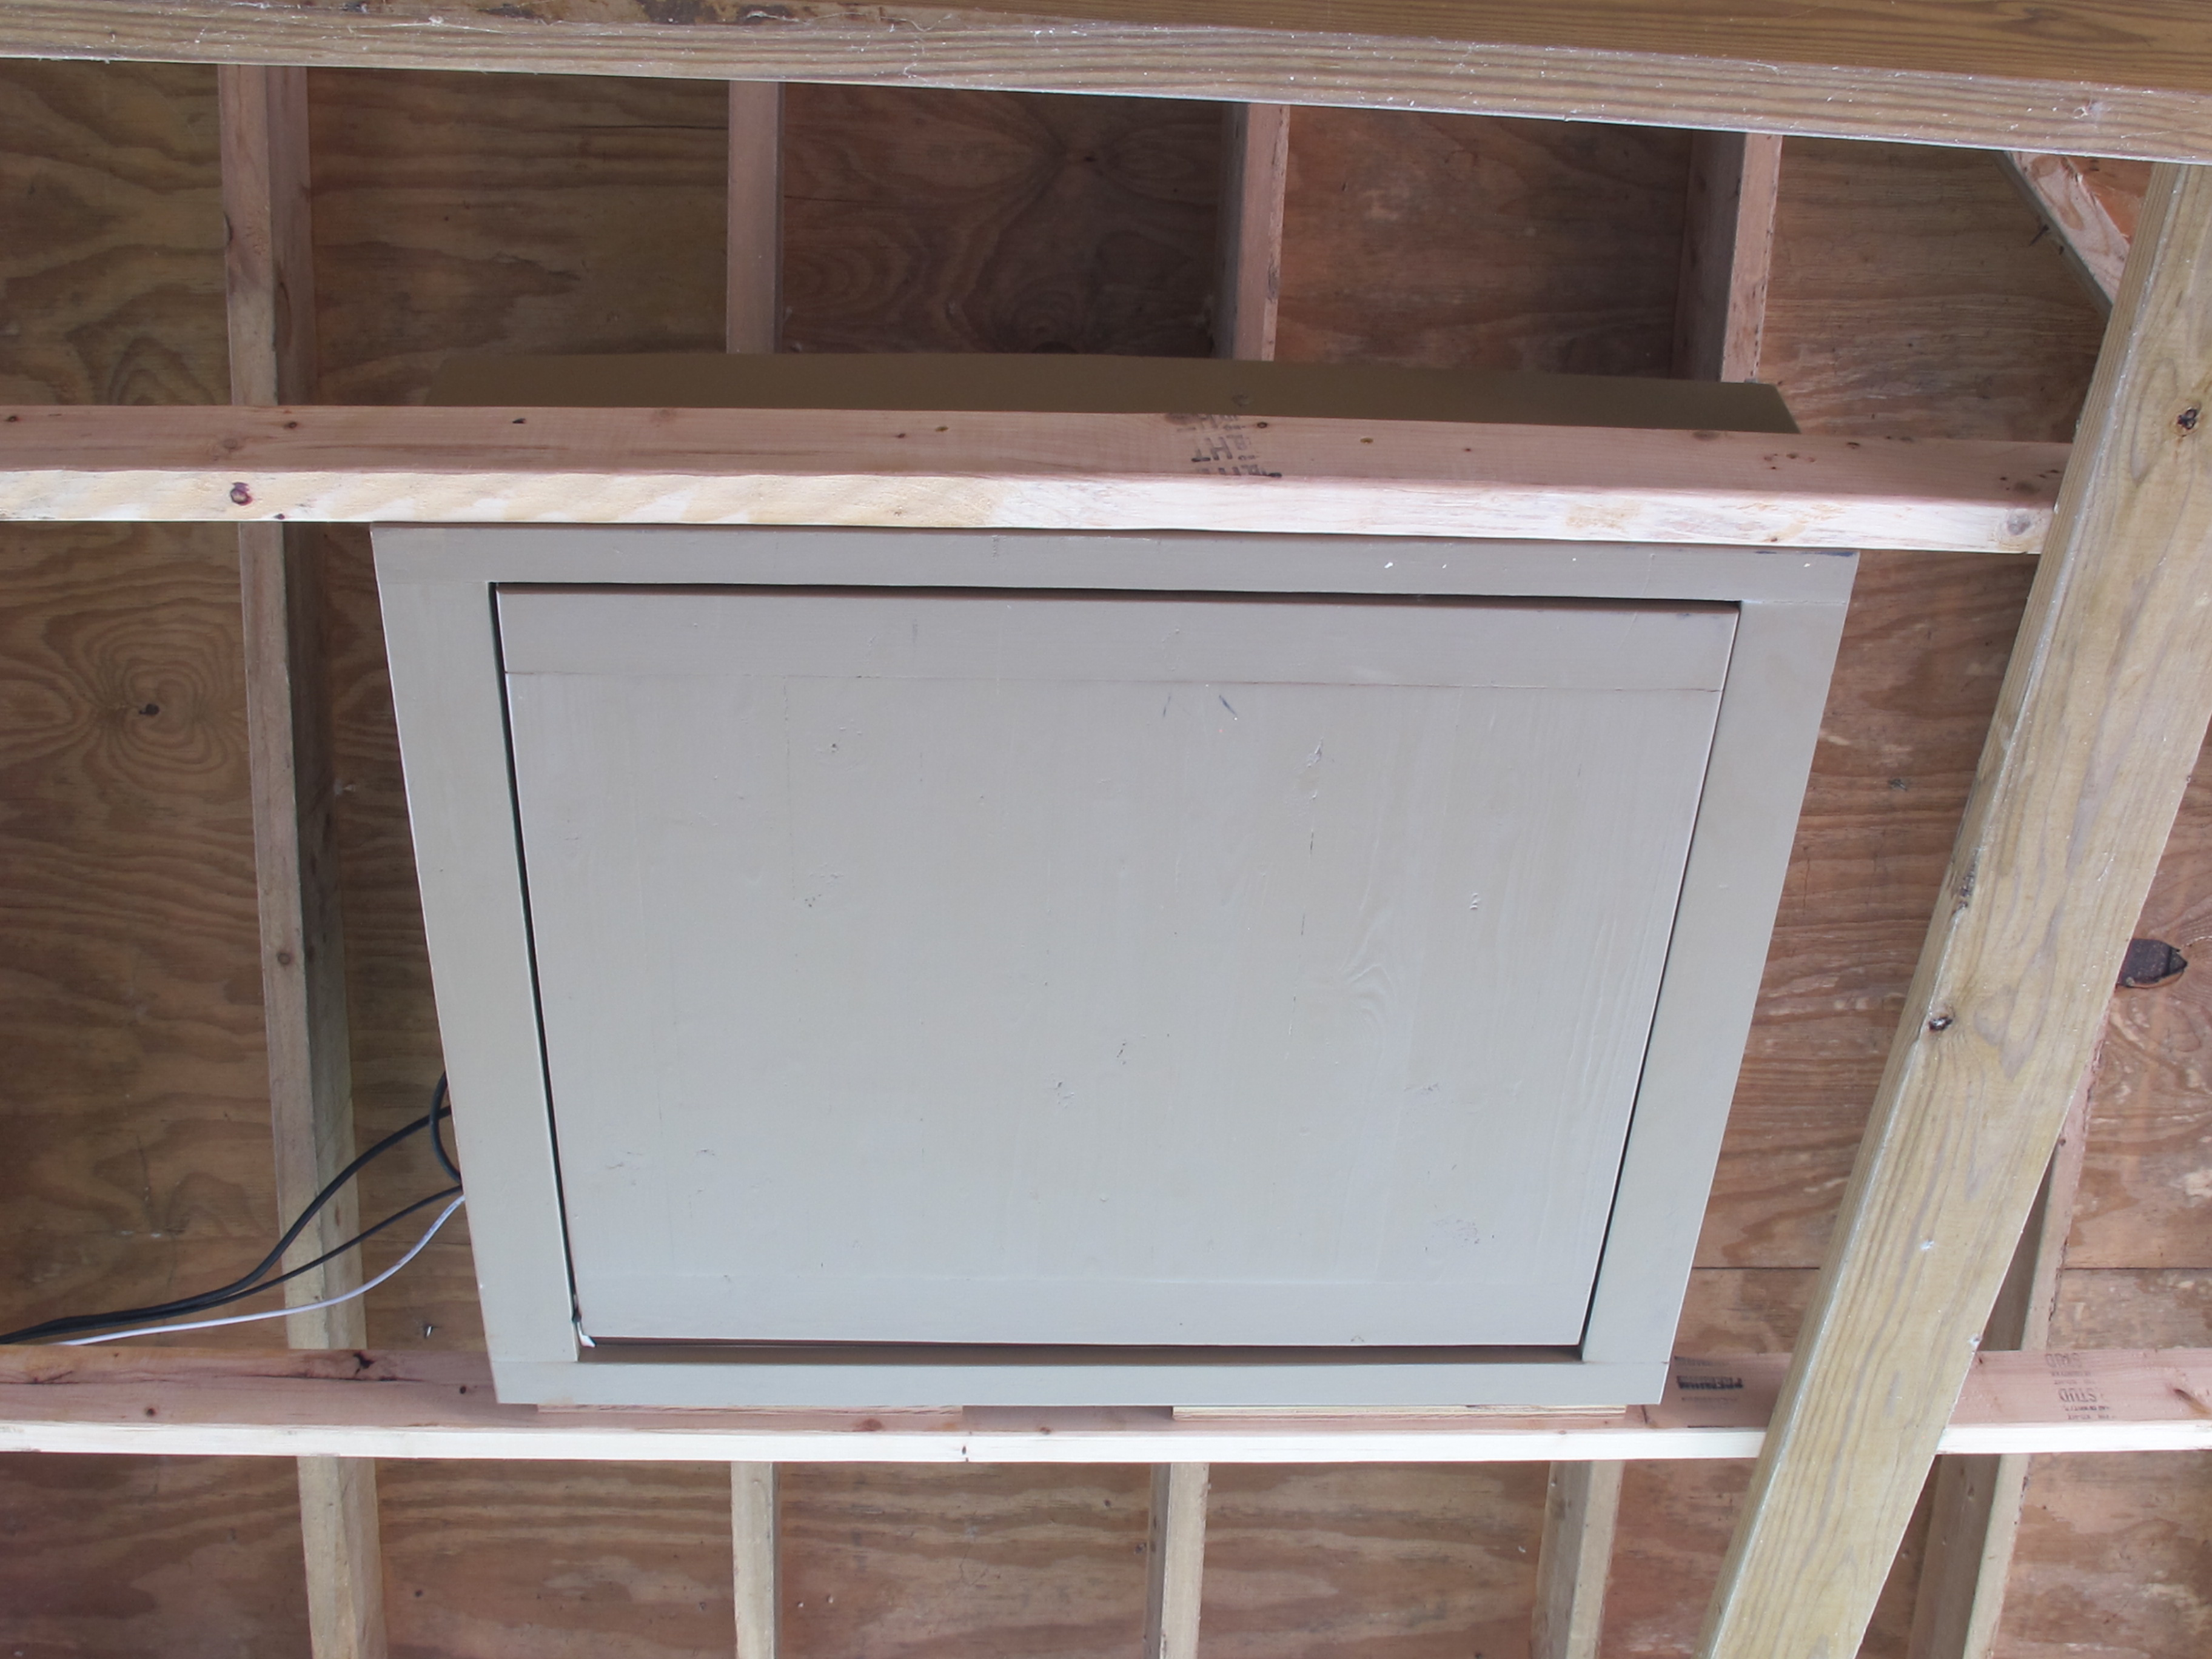 Picture of Motorized Flip Down TV Lift